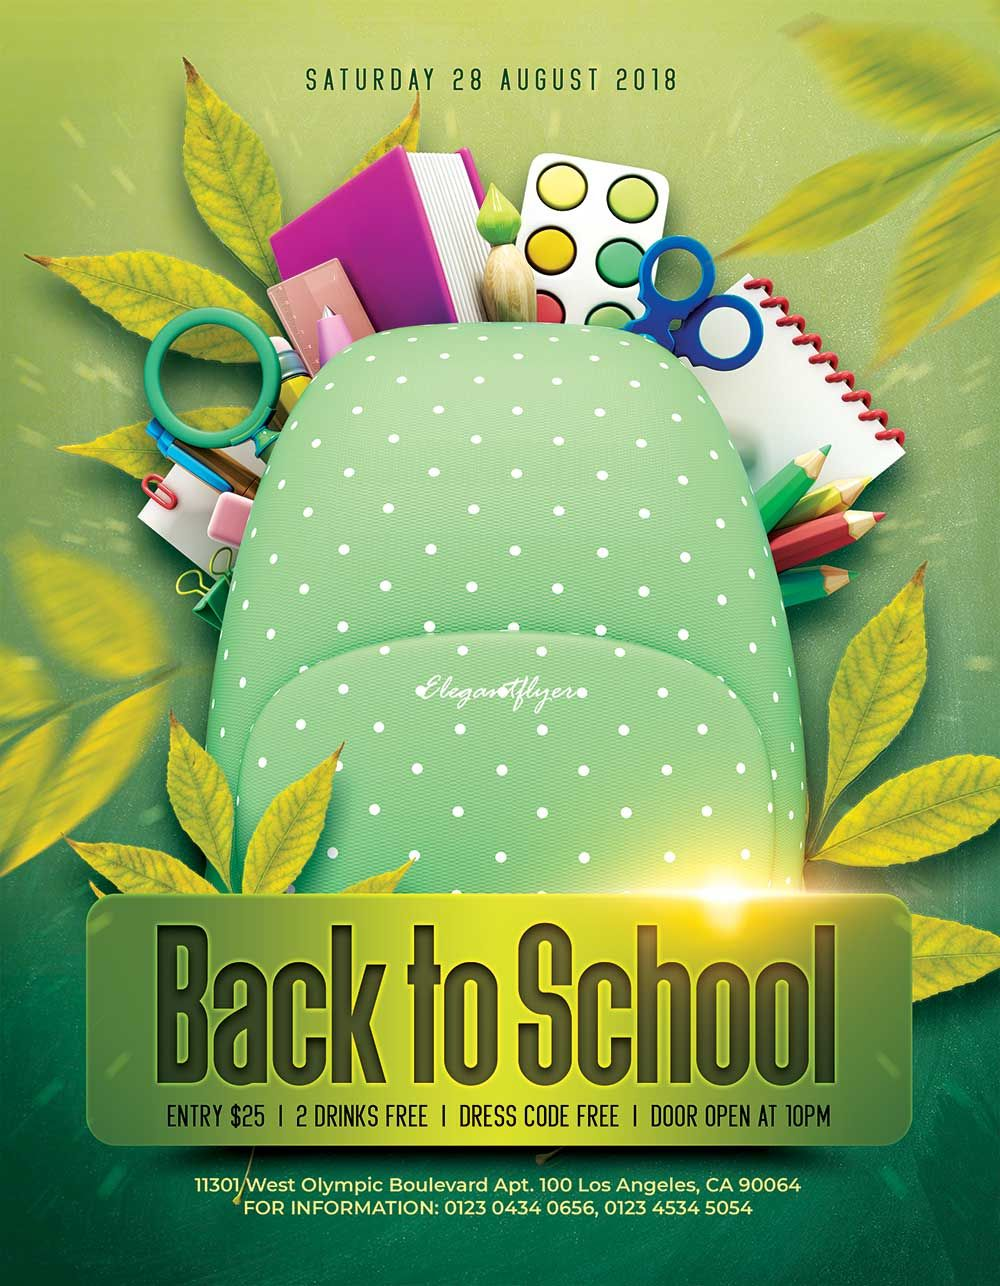 Download This Free Back To School Flyer Mockup In Psd Flyer